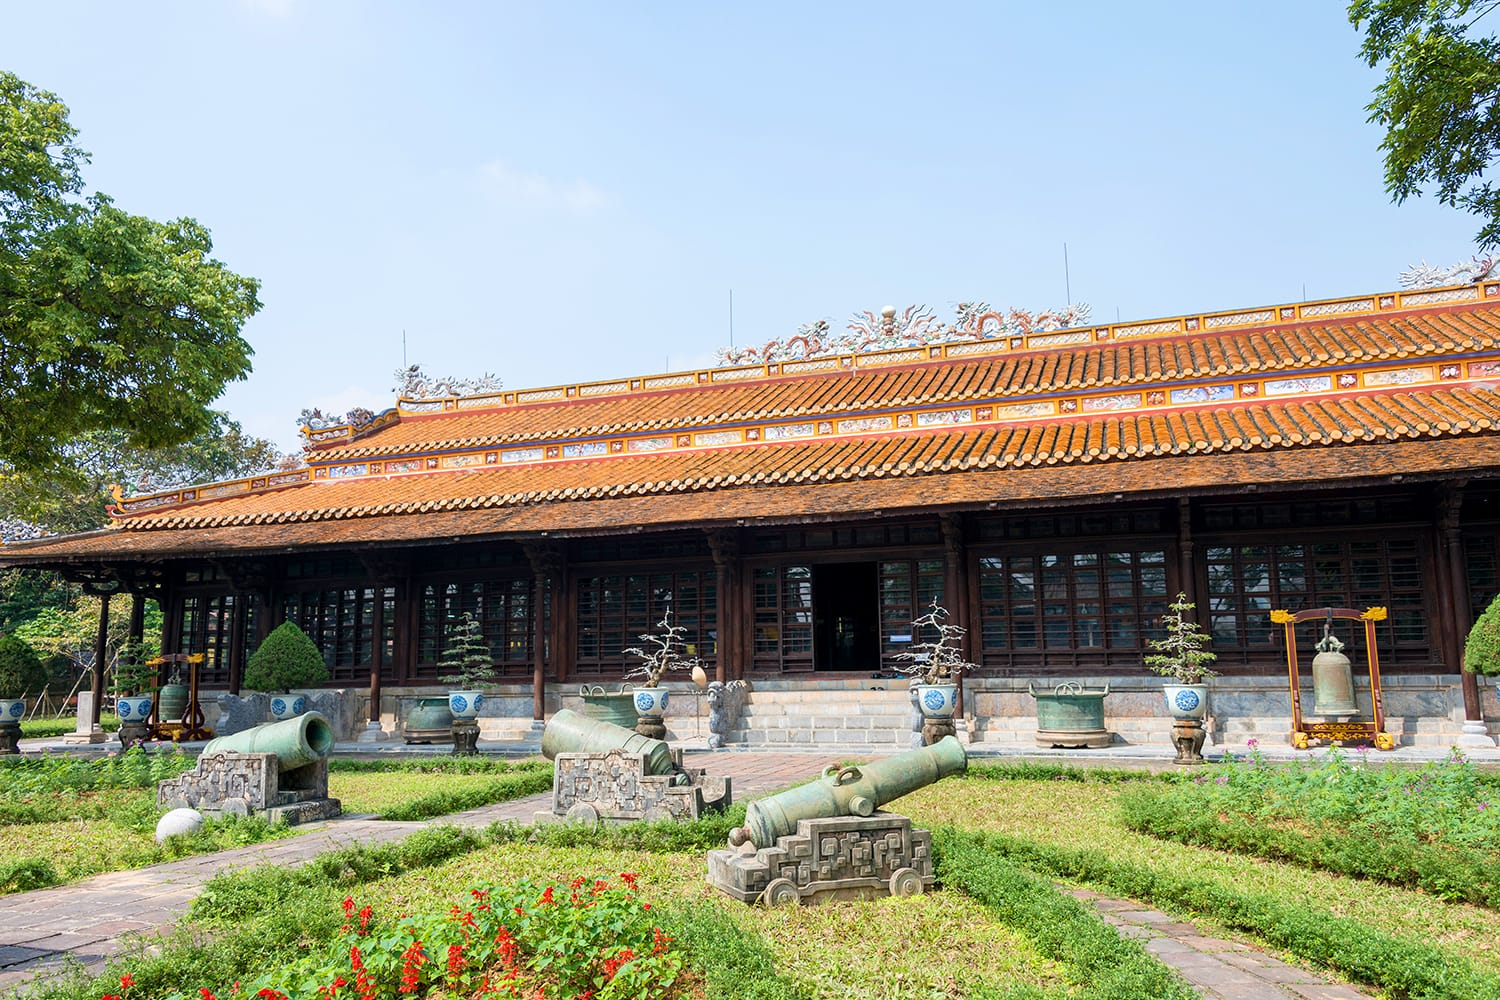 Hue Museum of Royal Fine Arts. a famous Historical site in Hue, Vietnam